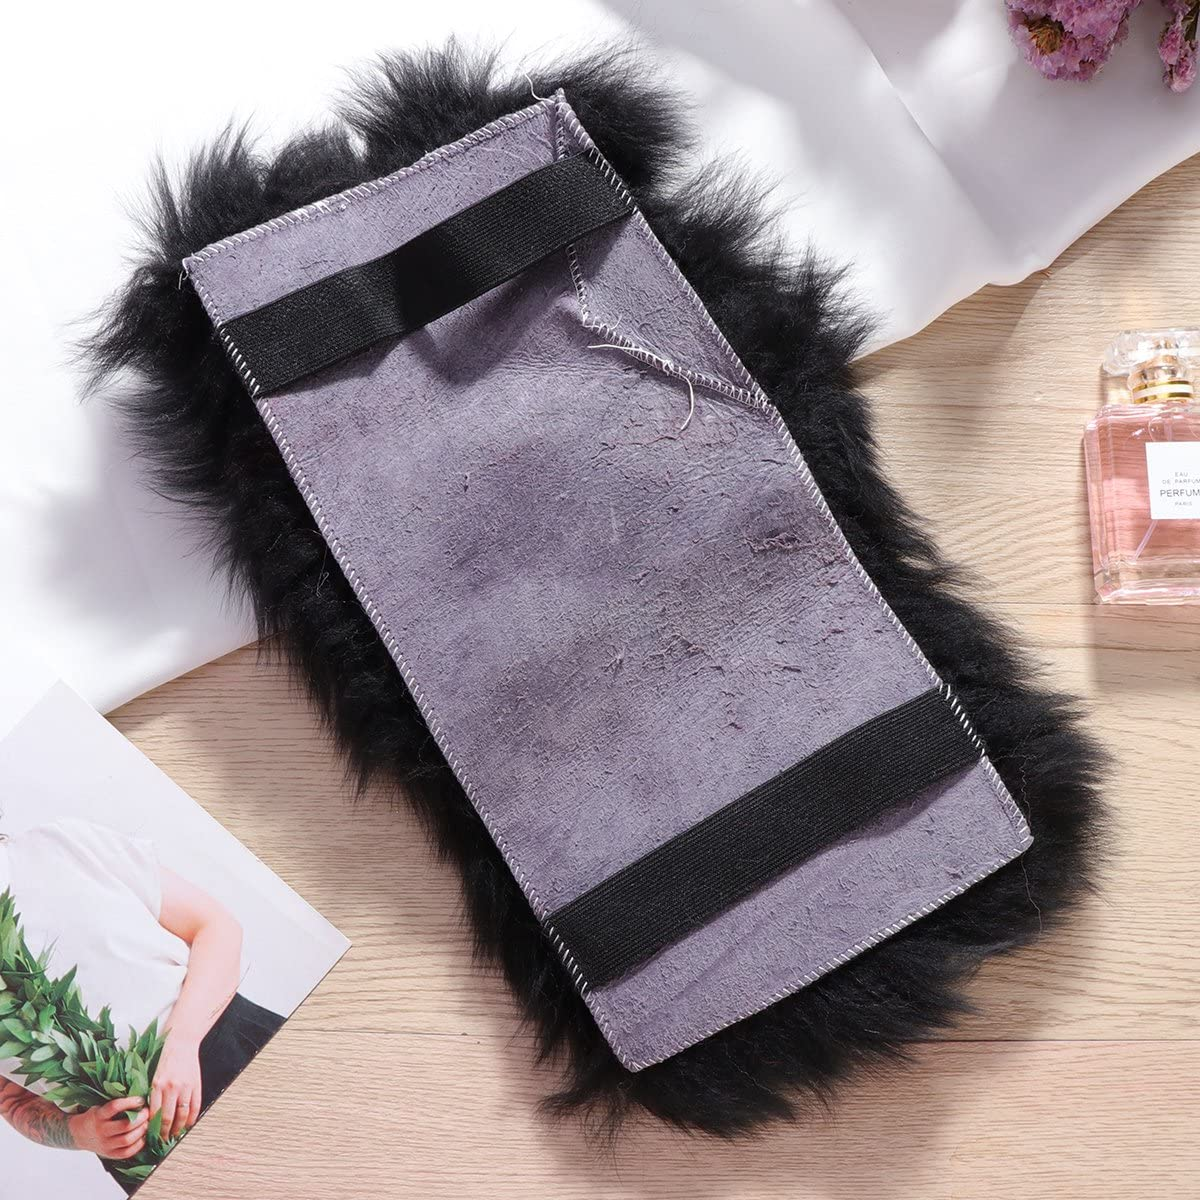 Black Auto Center Console Armrest Pad Warm Winter Fluffy Wool Vehicle Center Console Arm Rest Seat Box Pad Cover Cushion Universal Fit for Most Car